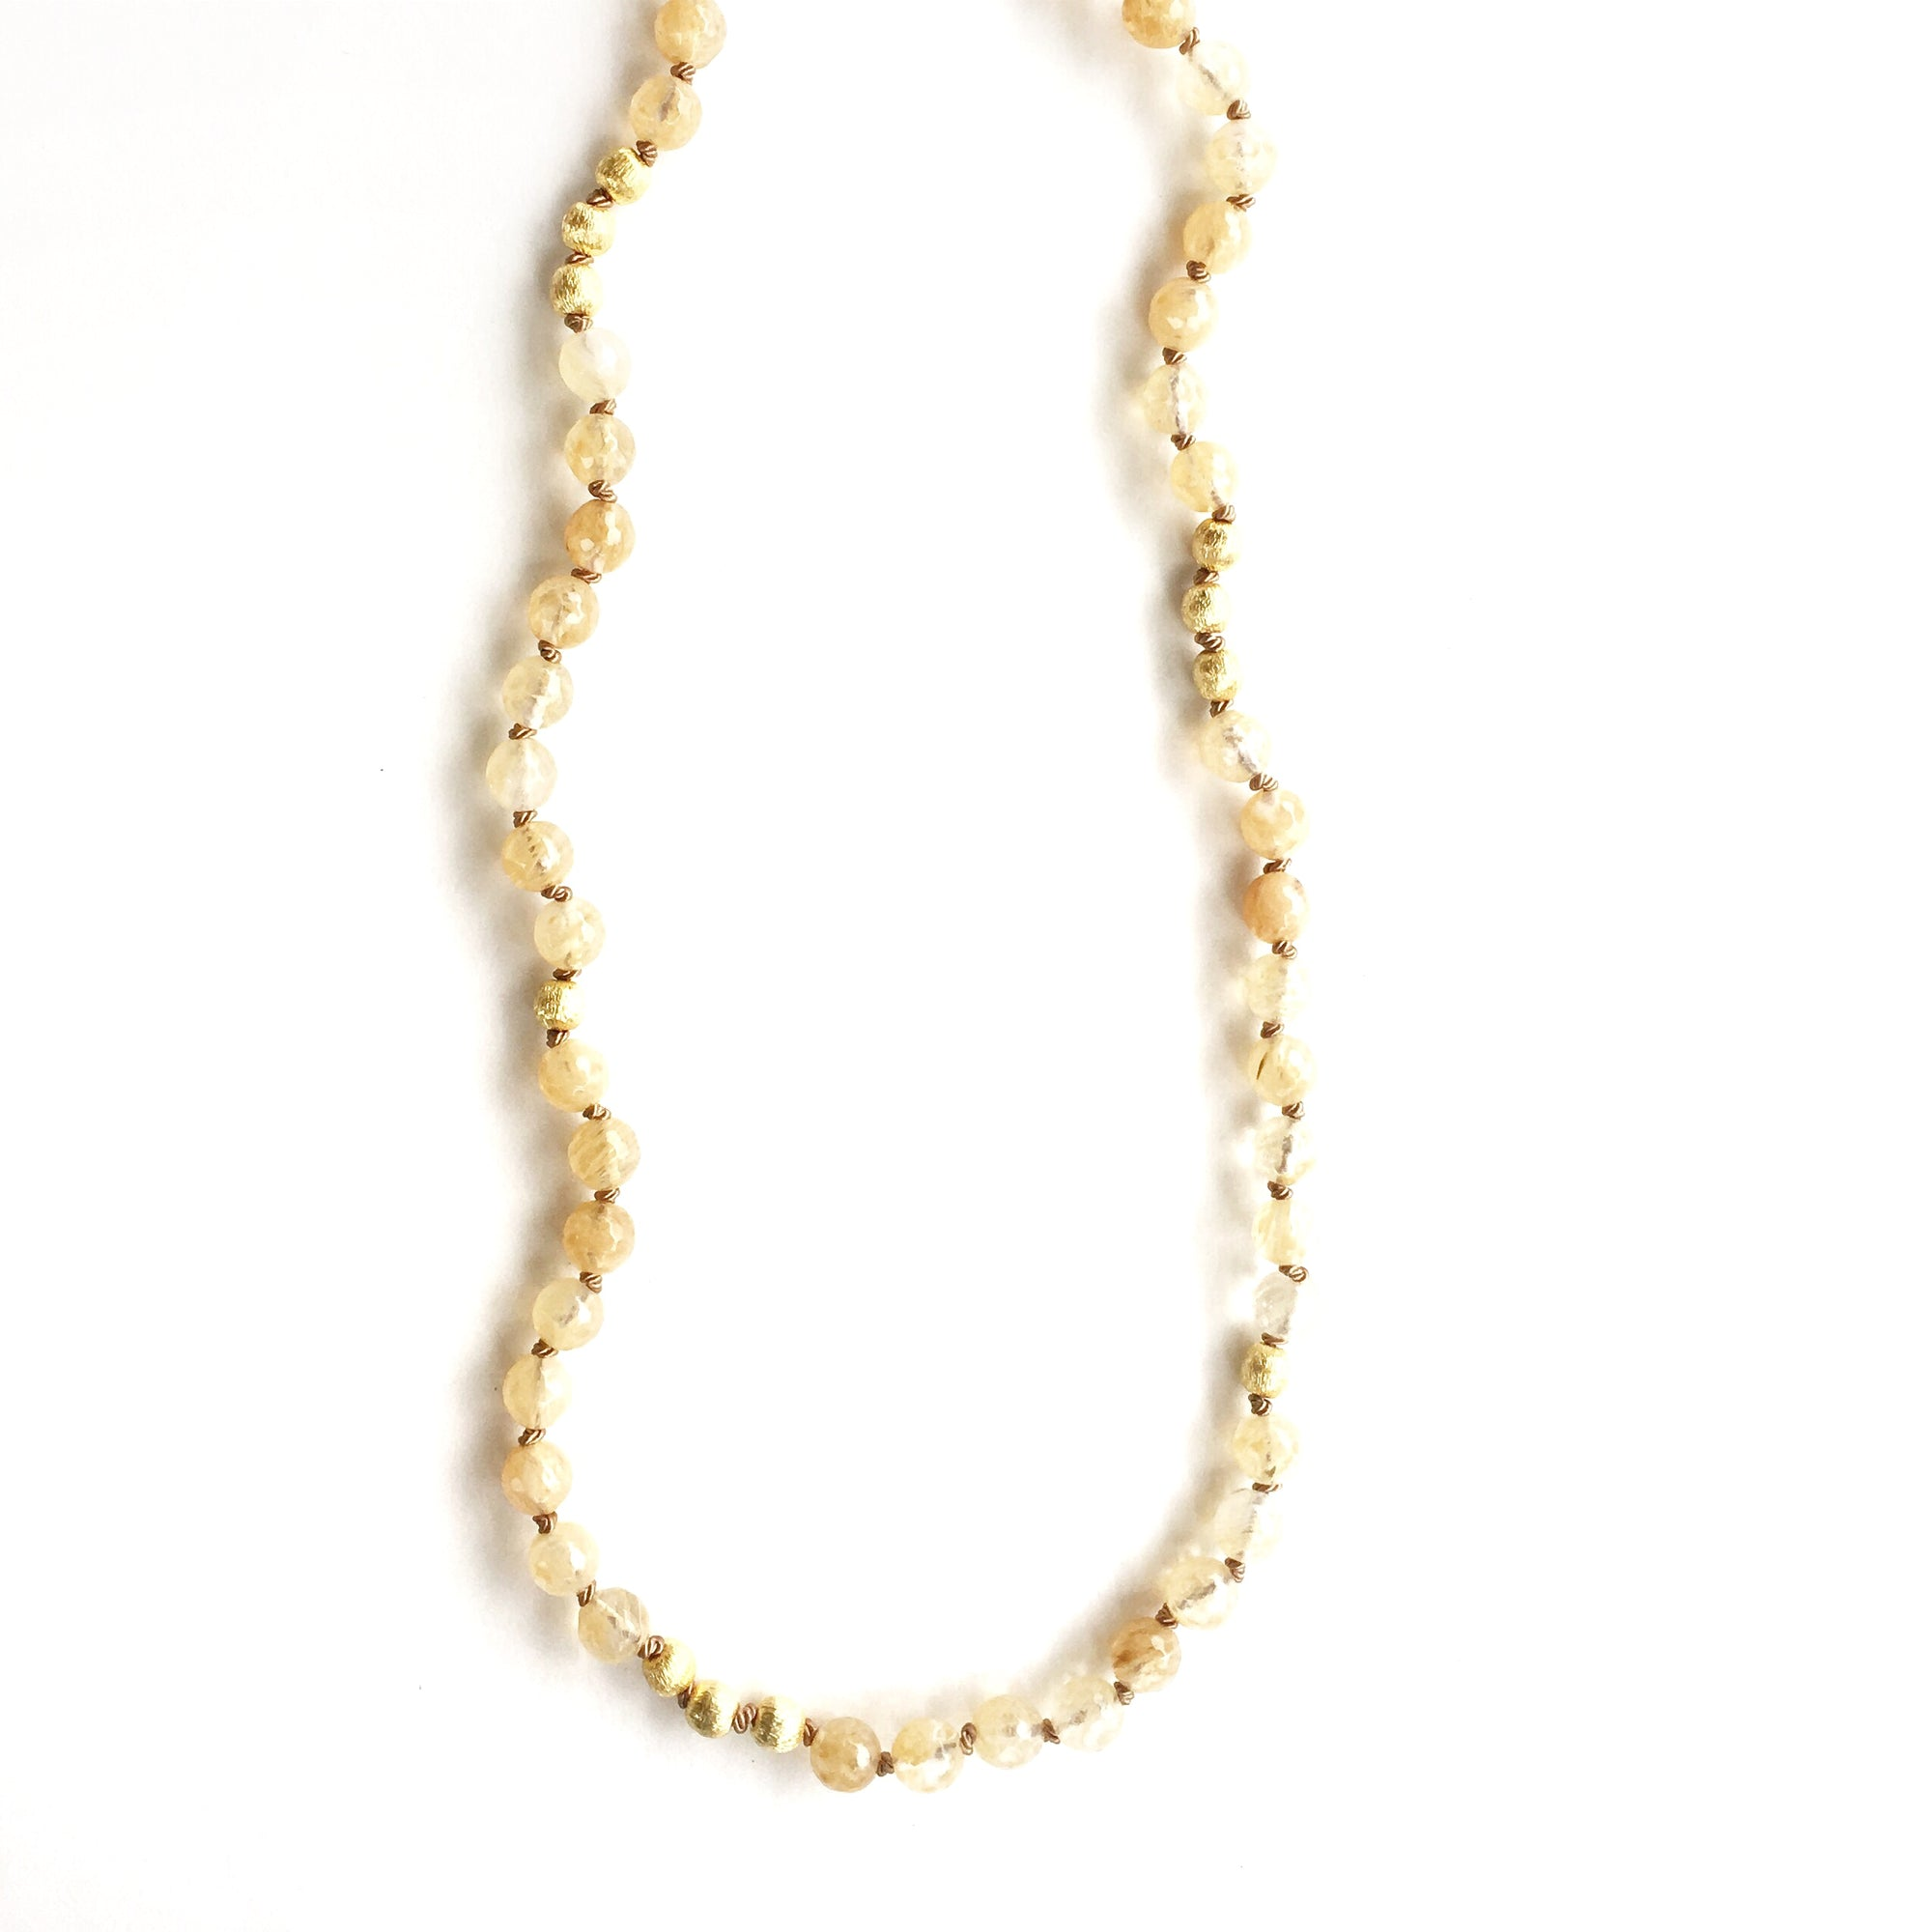 Solana Champagne Quartz Necklace